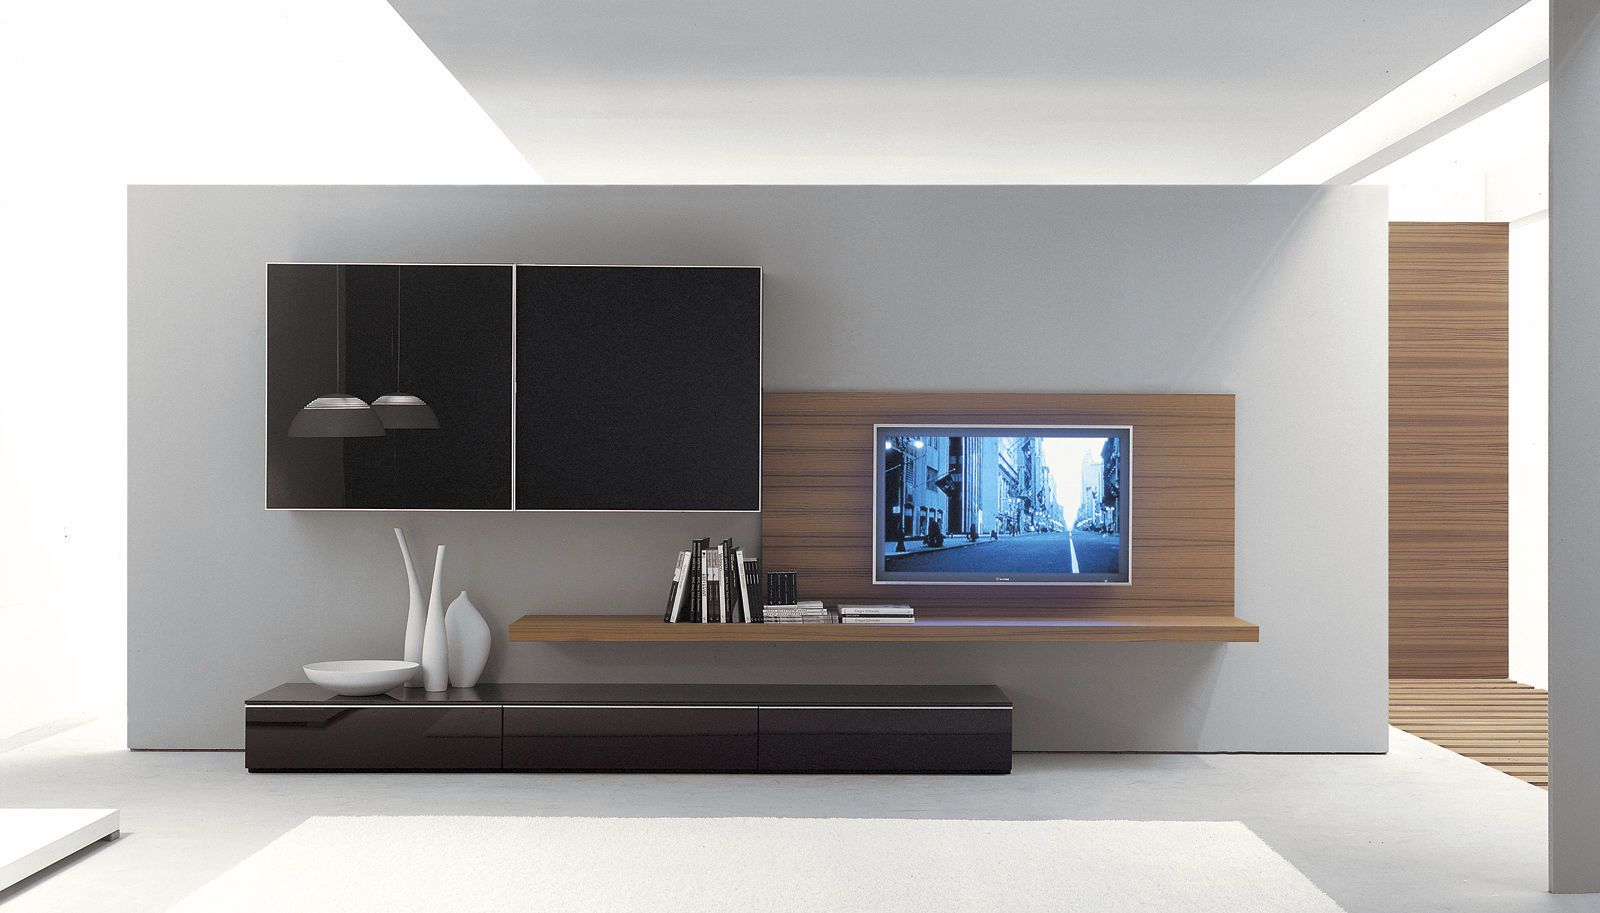 av wall with storage king furnituresystem furniturefurniture designcool furnituremodern tv - Modern Tv Wall Design